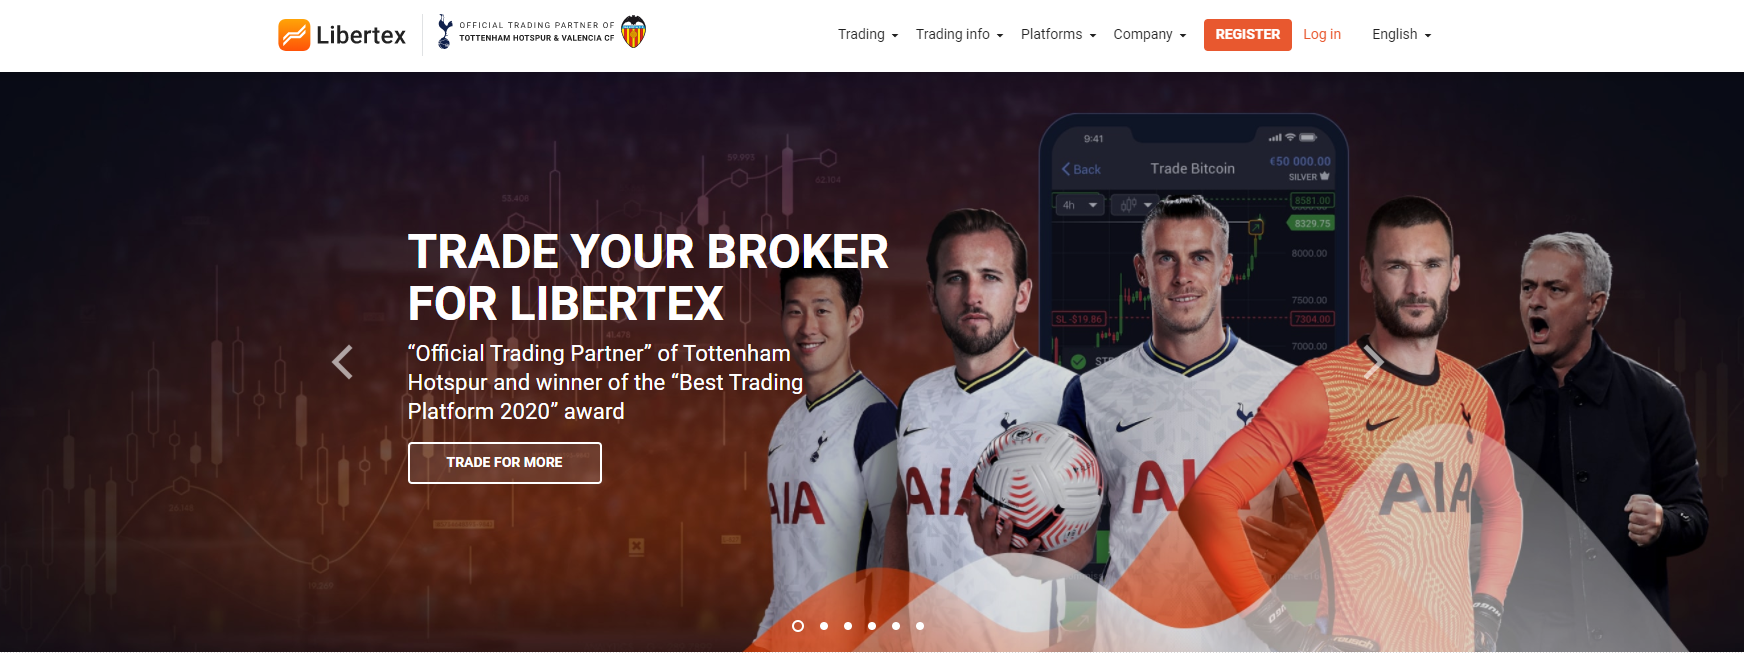 Libertex website